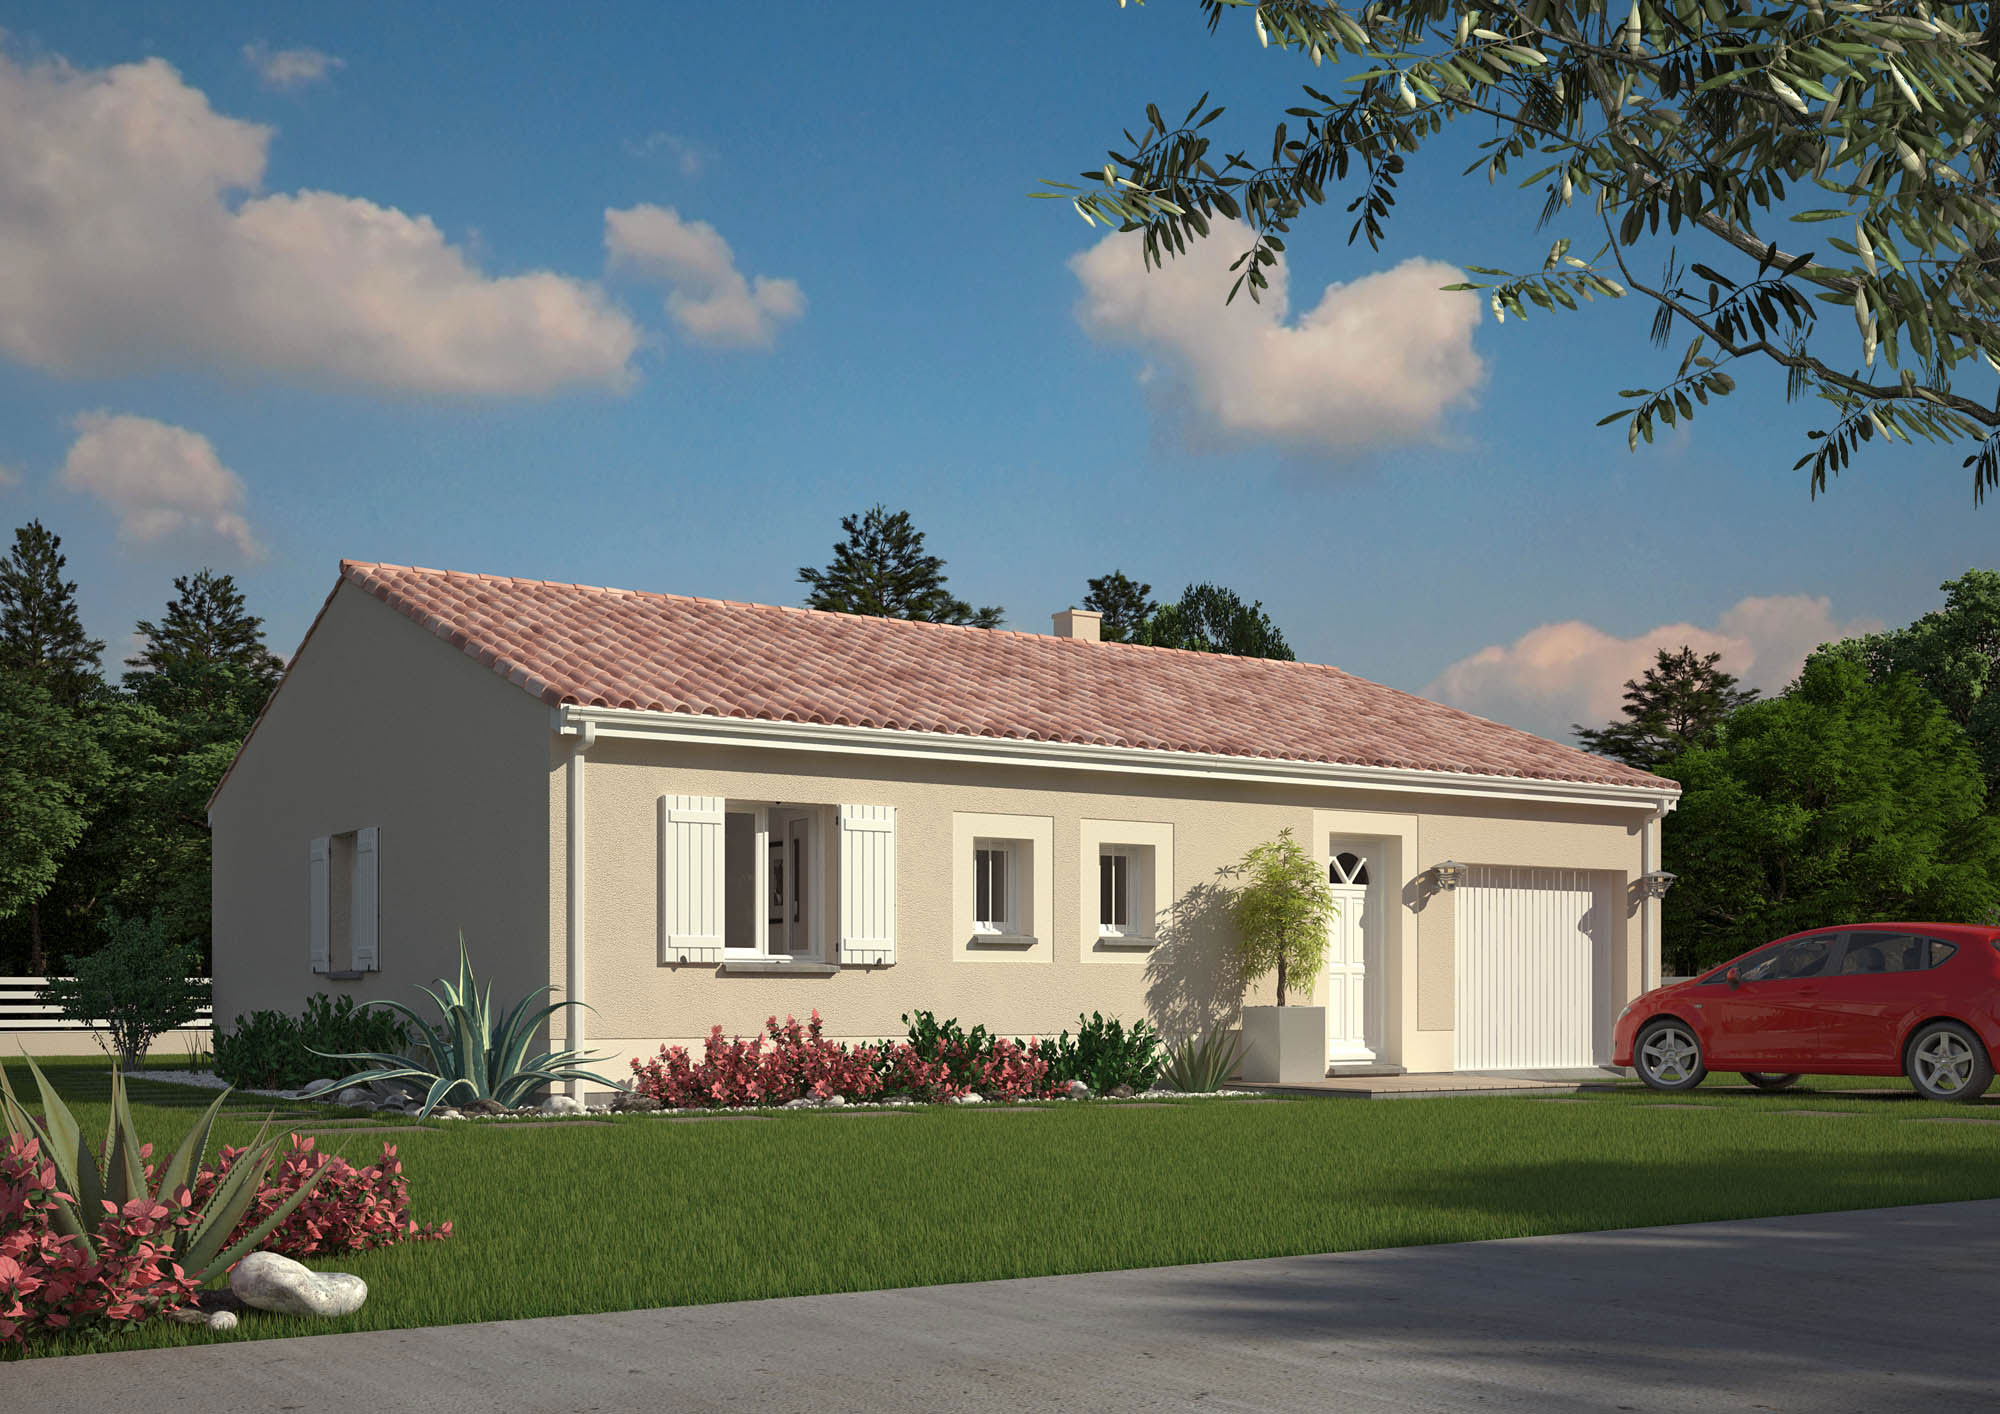 Sophie les maisons chantal b for Maisons chantal b